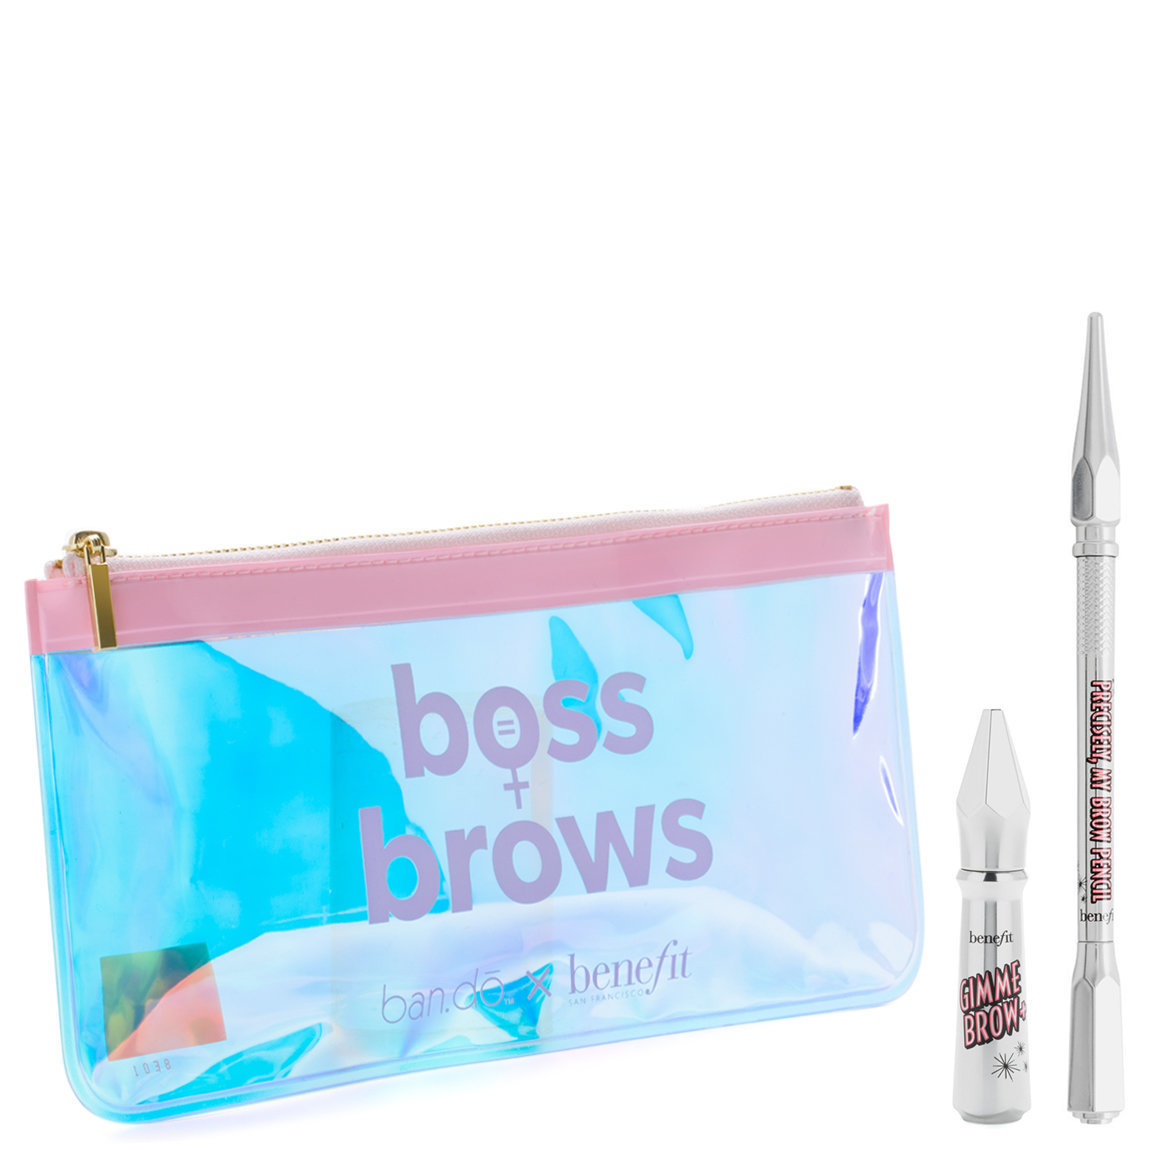 Benefit Cosmetics Boss Brows, Baby! Brow Duo Shade 6